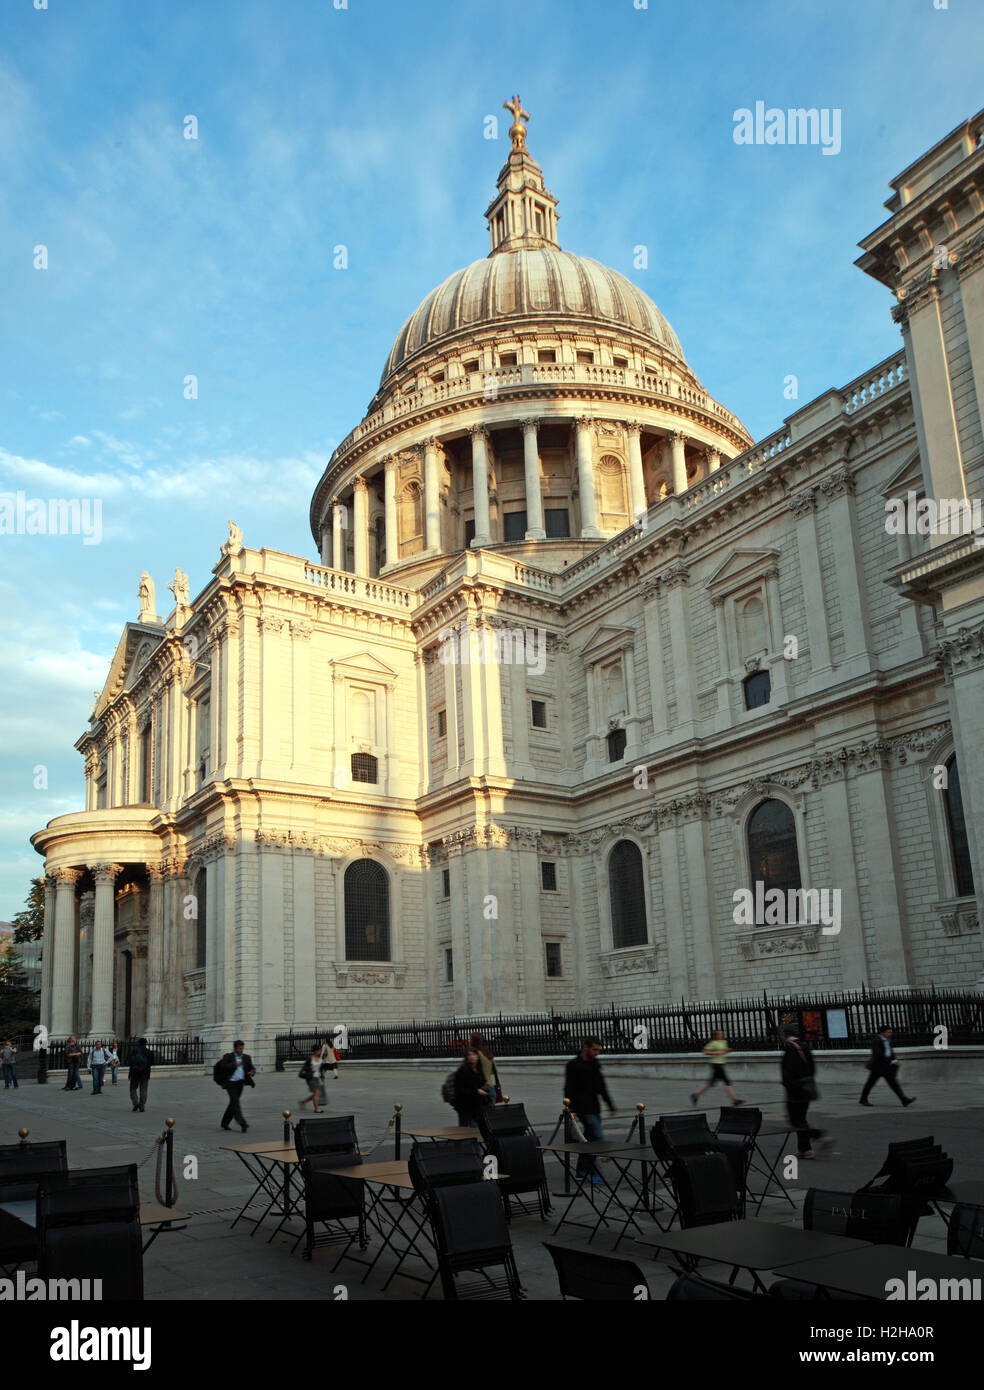 Christianity,Religion,religious,building,great,fire,of,Christopher,Wren,wide,angle,wideangle,tourist,tourism,travel,view,pilgrimage,famous,heritage,historic,landmark,landmarks,building,citadel,capital,cities,city,worship,faith,bible,dome,icon,iconic,St Pauls,City of London,St Pauls Cathedral,GoTonySmith,@HotpixUK,Tony,Smith,different,unique,famous,visitor,landmark,Great,Britain,UK,GB,GreatBritain,prayer,war,survivor,WWII,Buy Pictures of,Buy Images Of,Images of,Stock Images,Tony Smith,Photo of,Famous visitor landmark,Great Britain,War Survivor